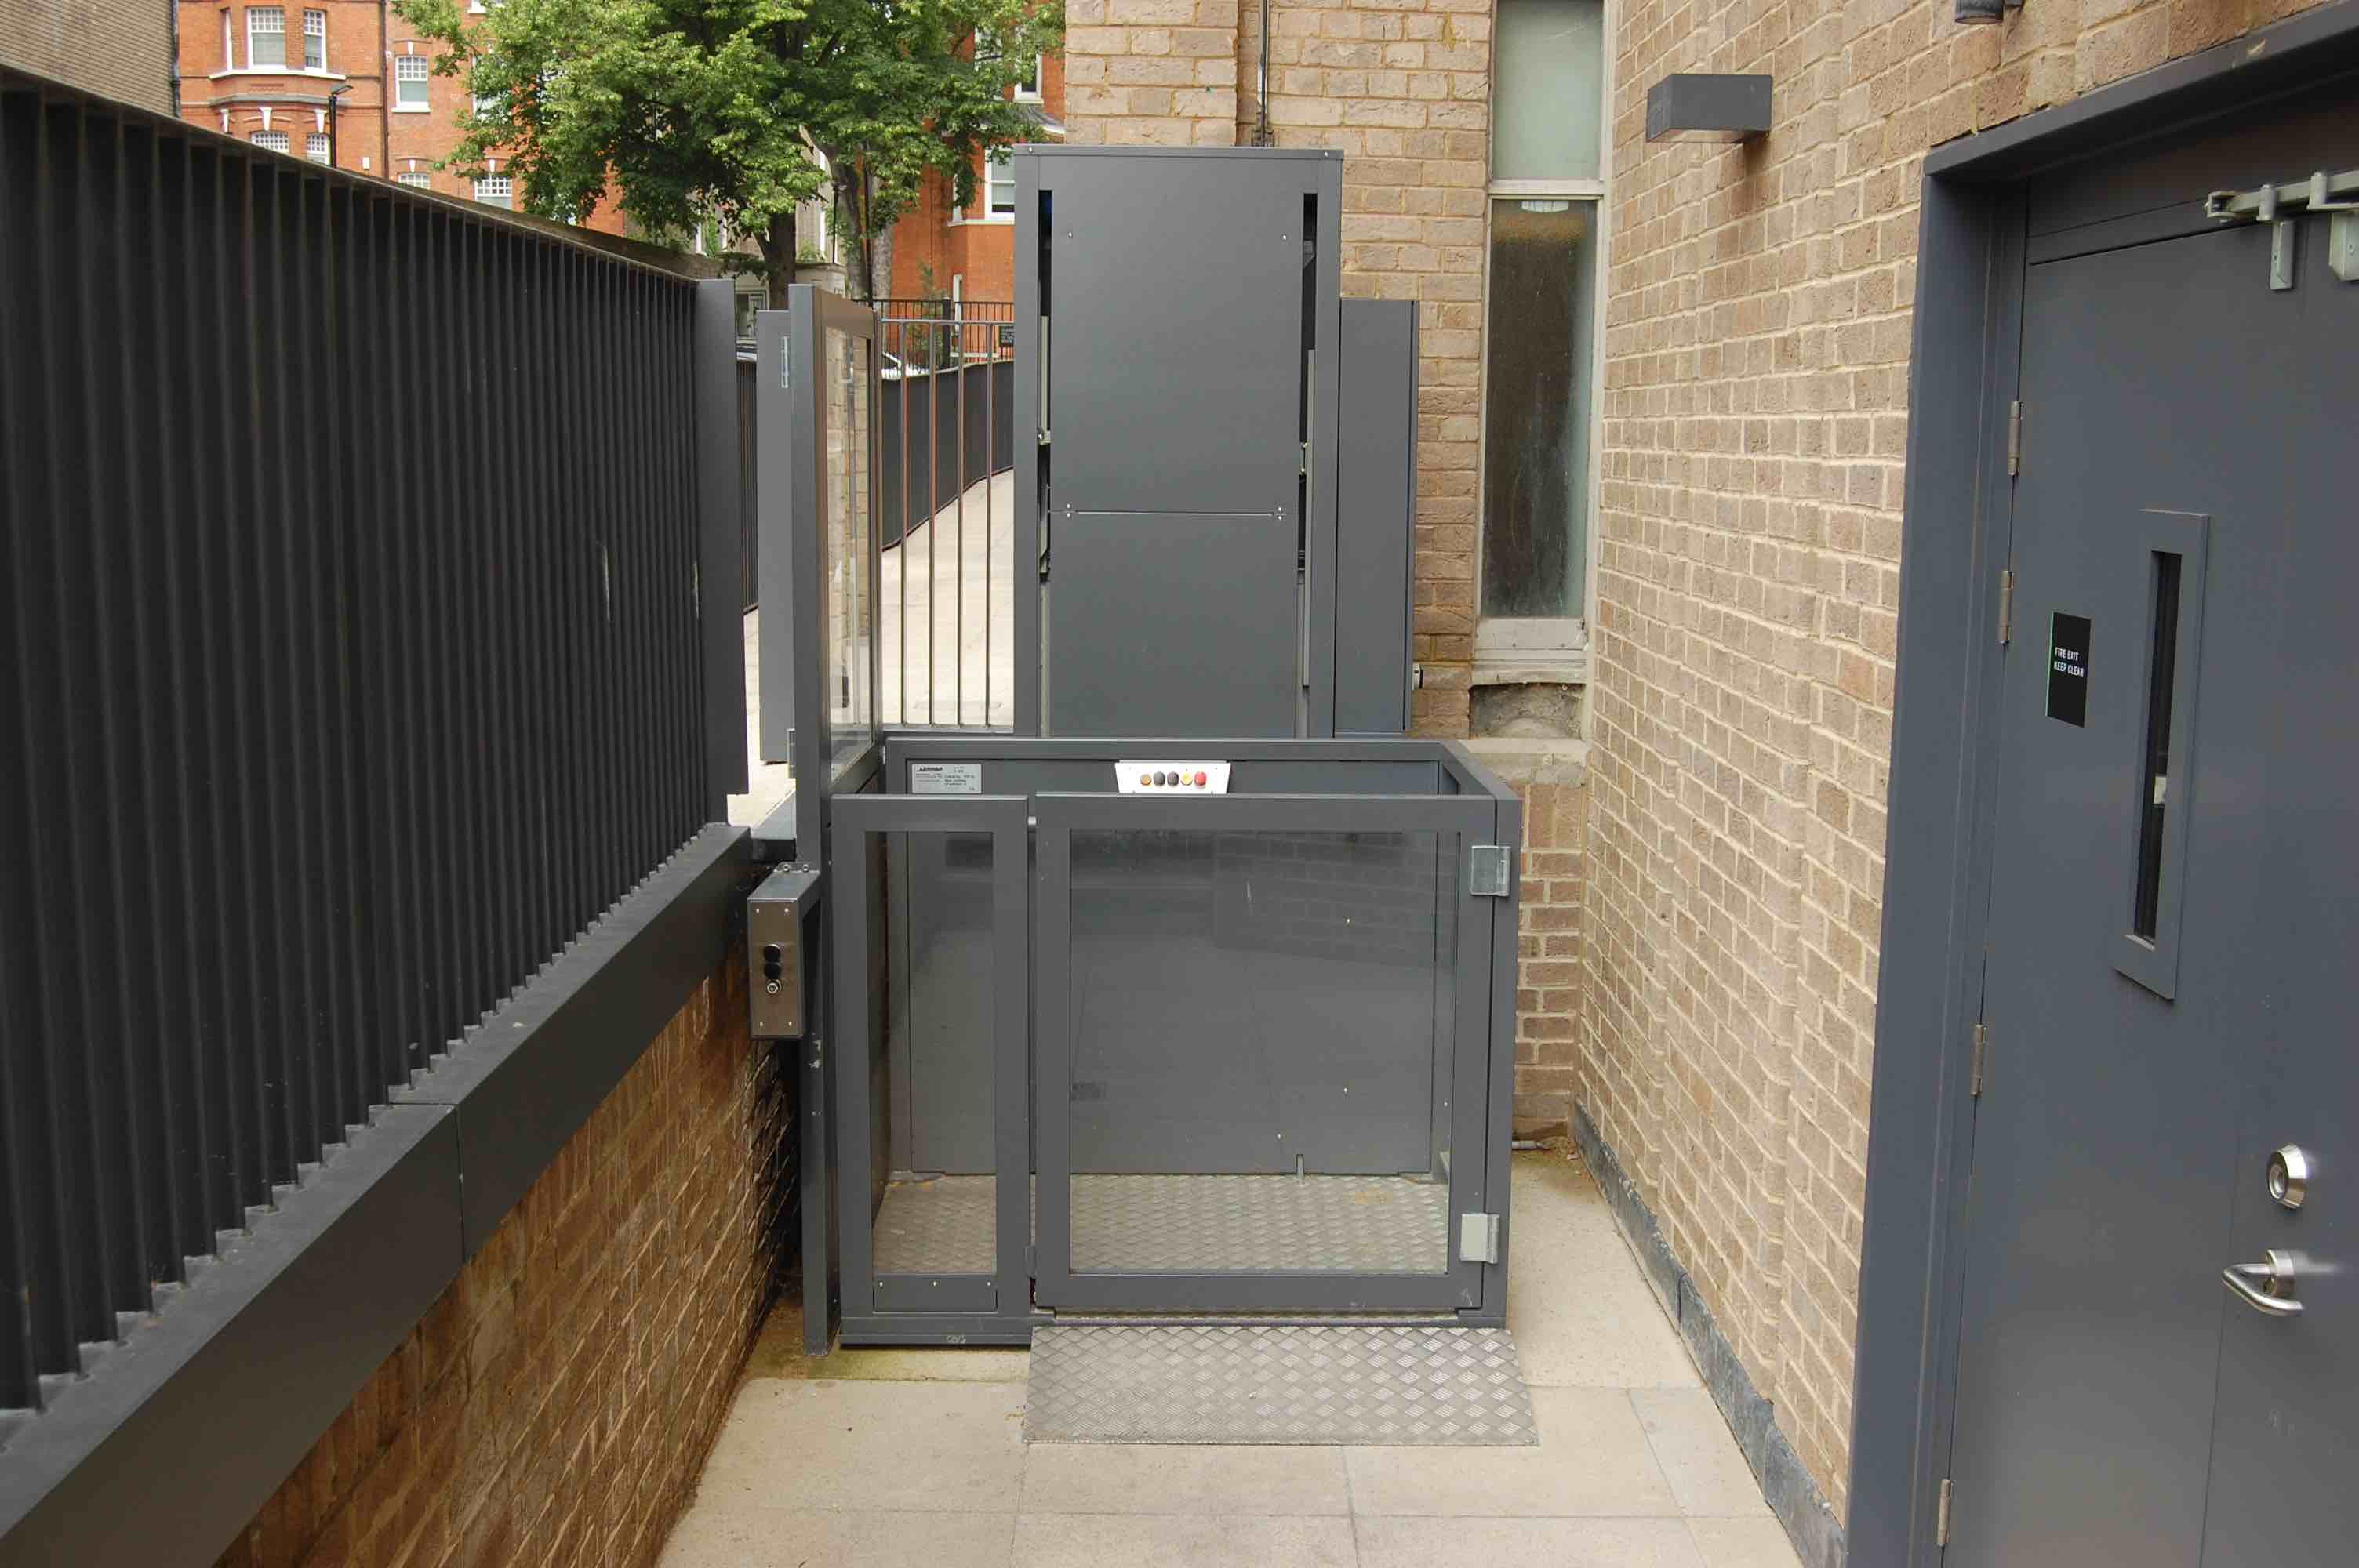 Outdoor Wheelchair Lift at the National Army Museum